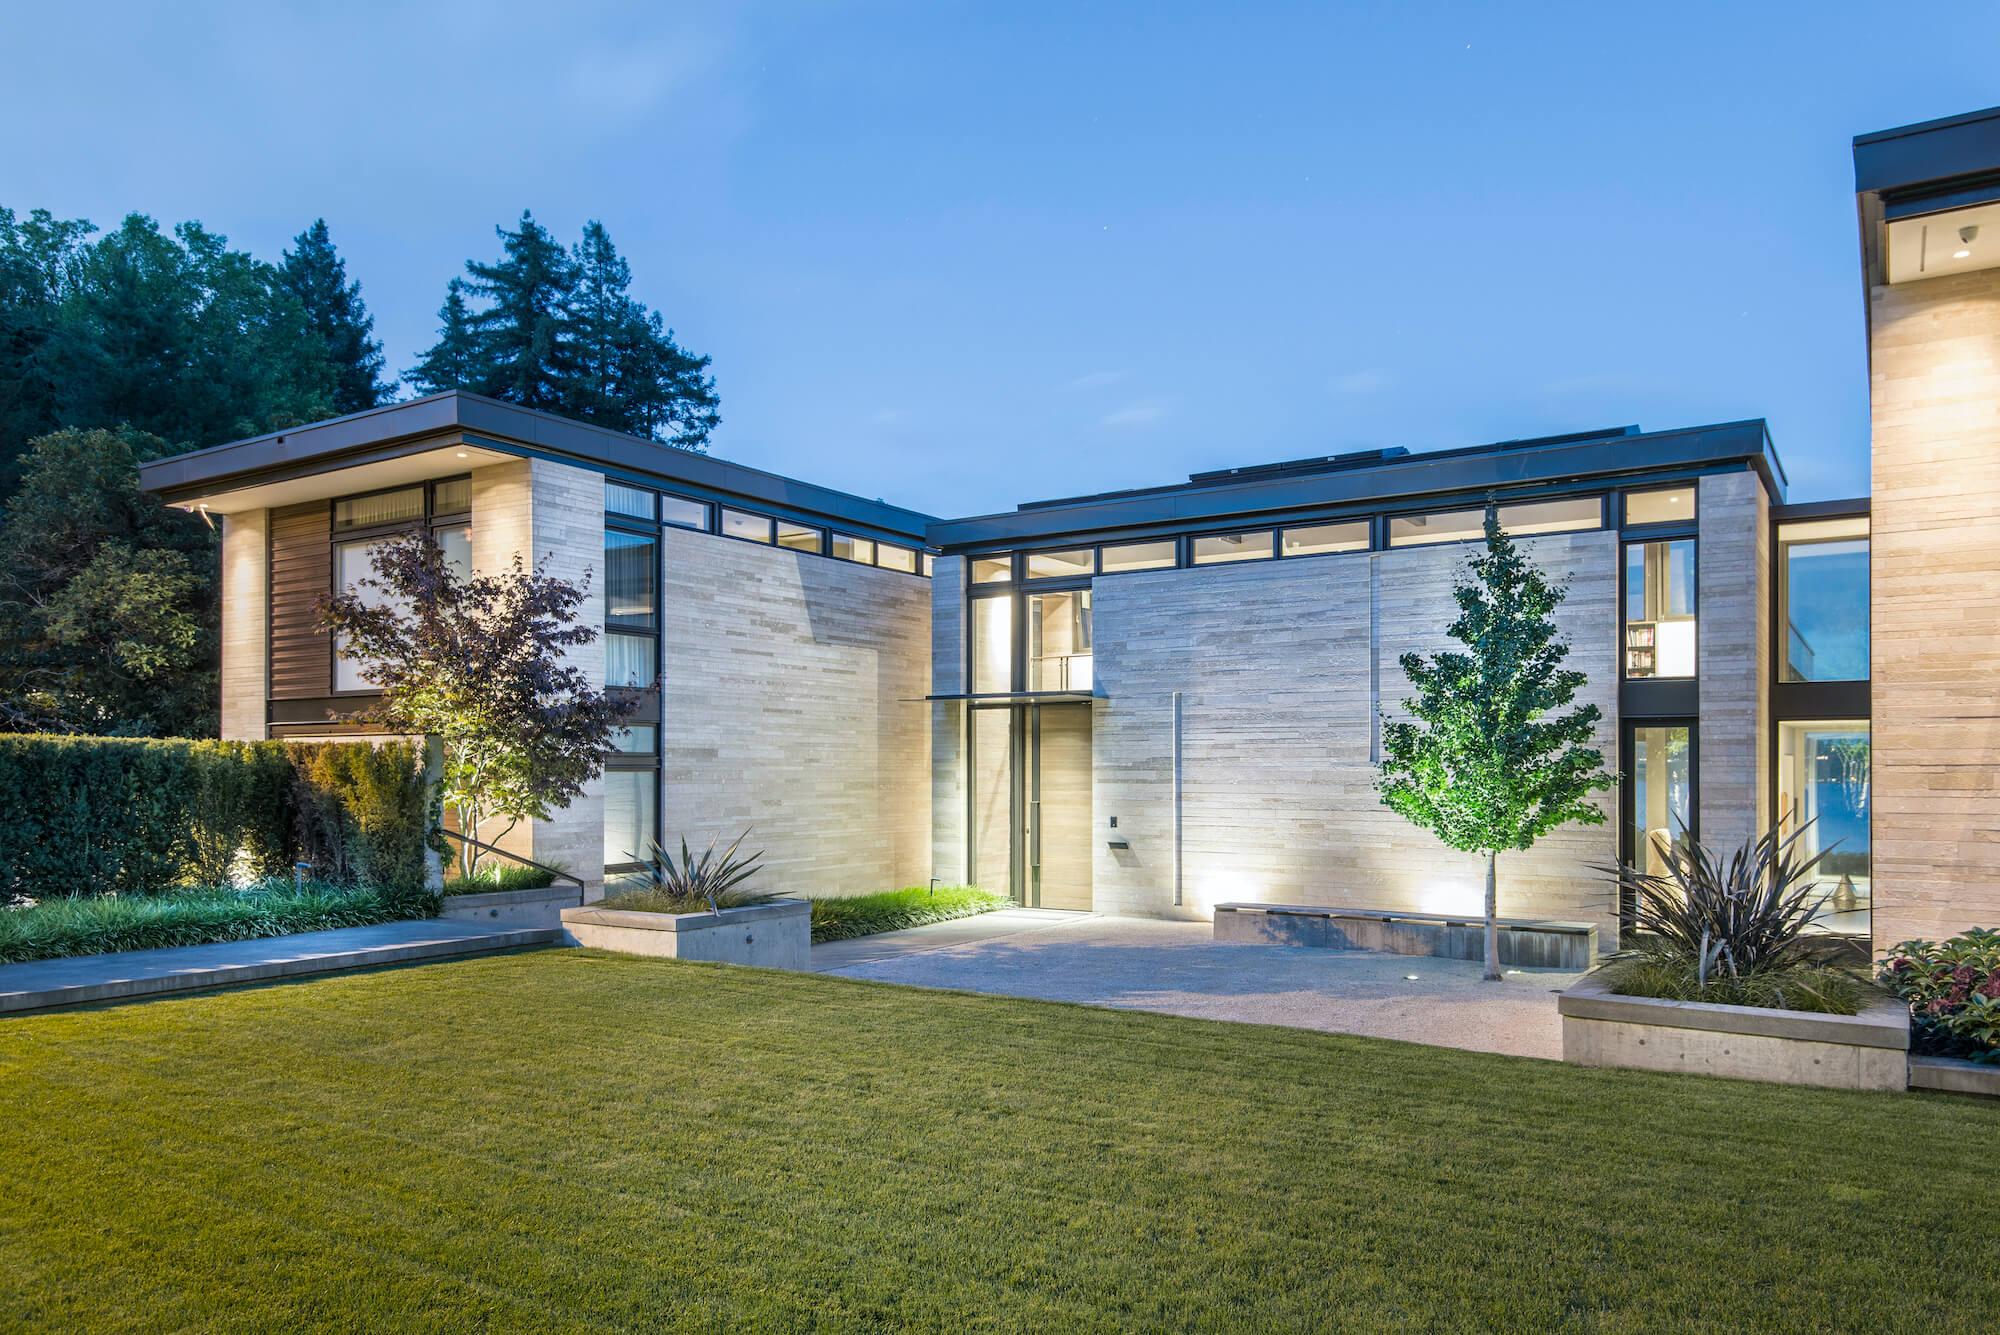 Washington Park Hillside Residence by Stuart Silk Architects